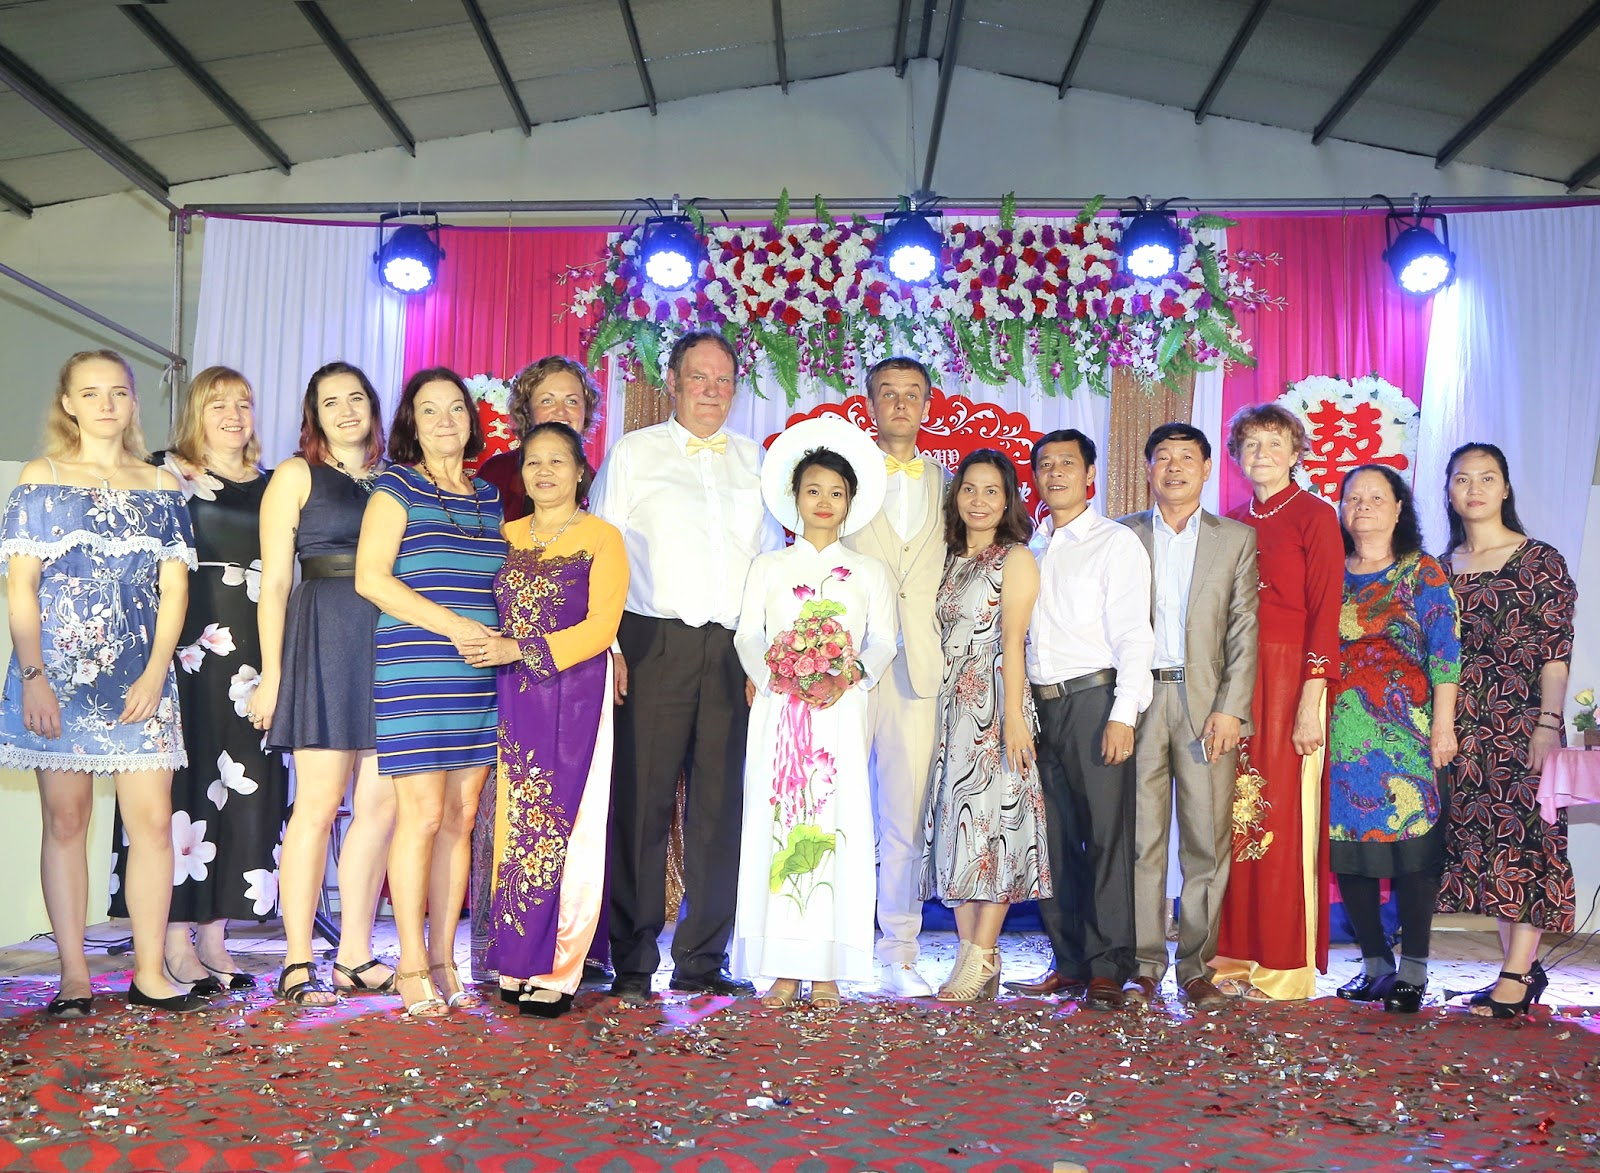 Nguyen Thi Sam, Meigo Mark and their families at the couple's wedding in a photo provided by Meigo Mark